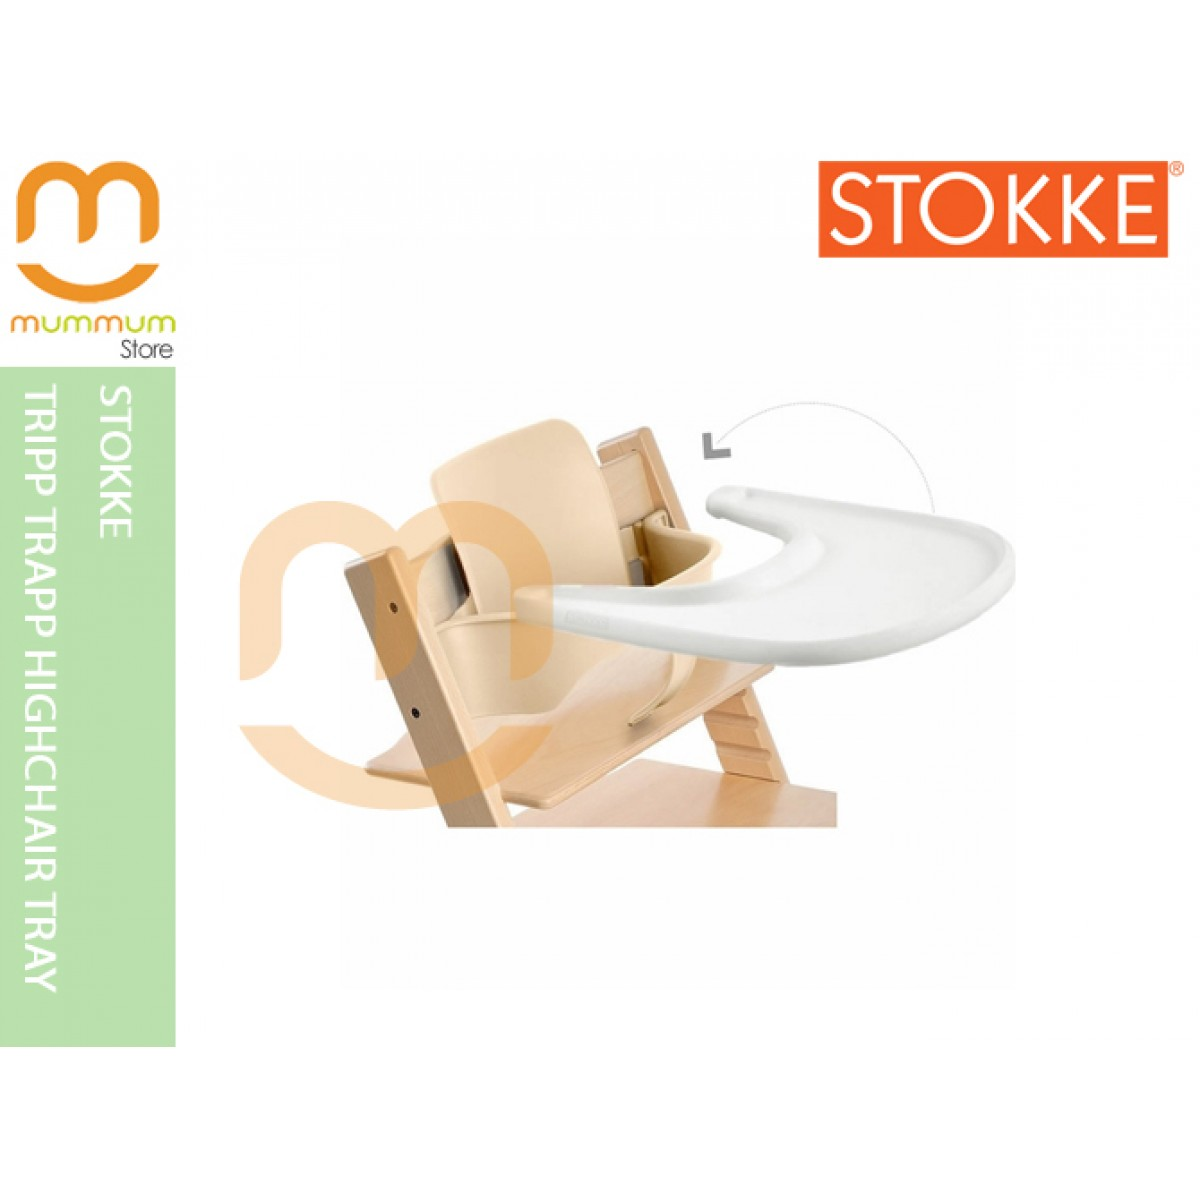 Stokke Tripp Trapp High Chair Tray 6M+